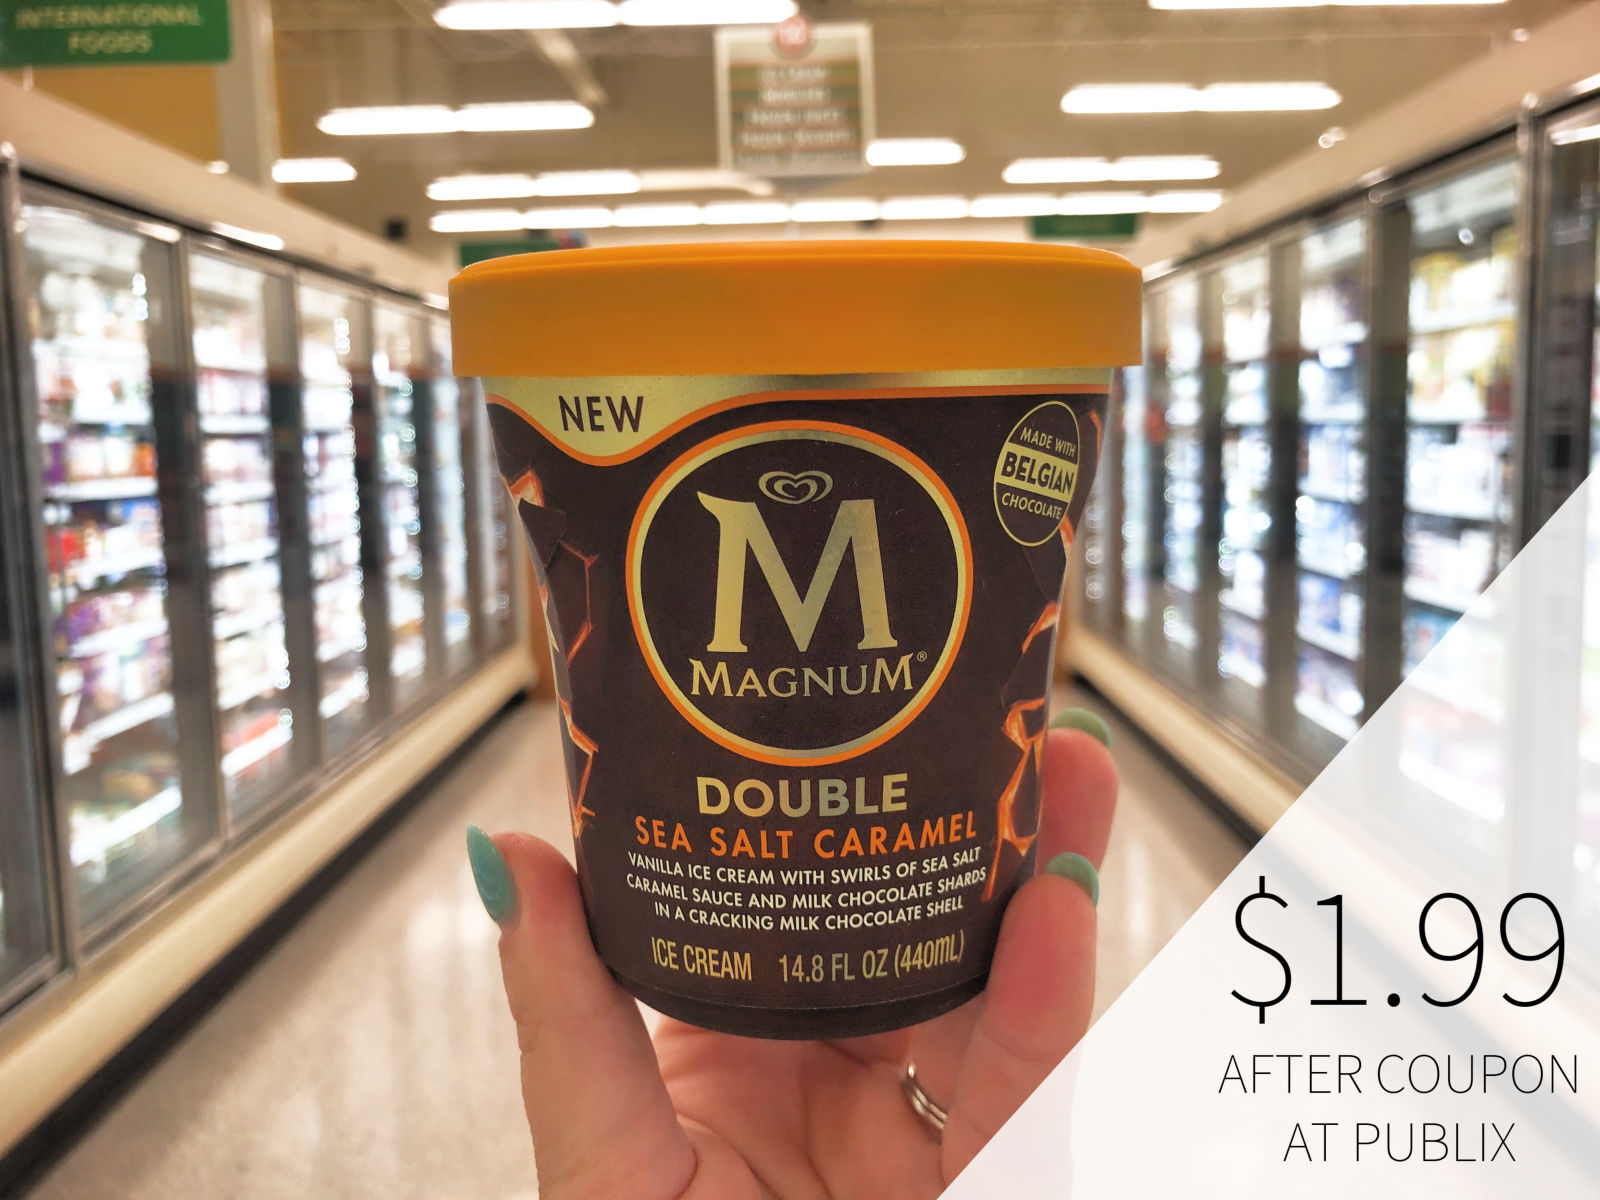 Fantastic Deal On Magnum Ice Cream This Week At Publix on I Heart Publix